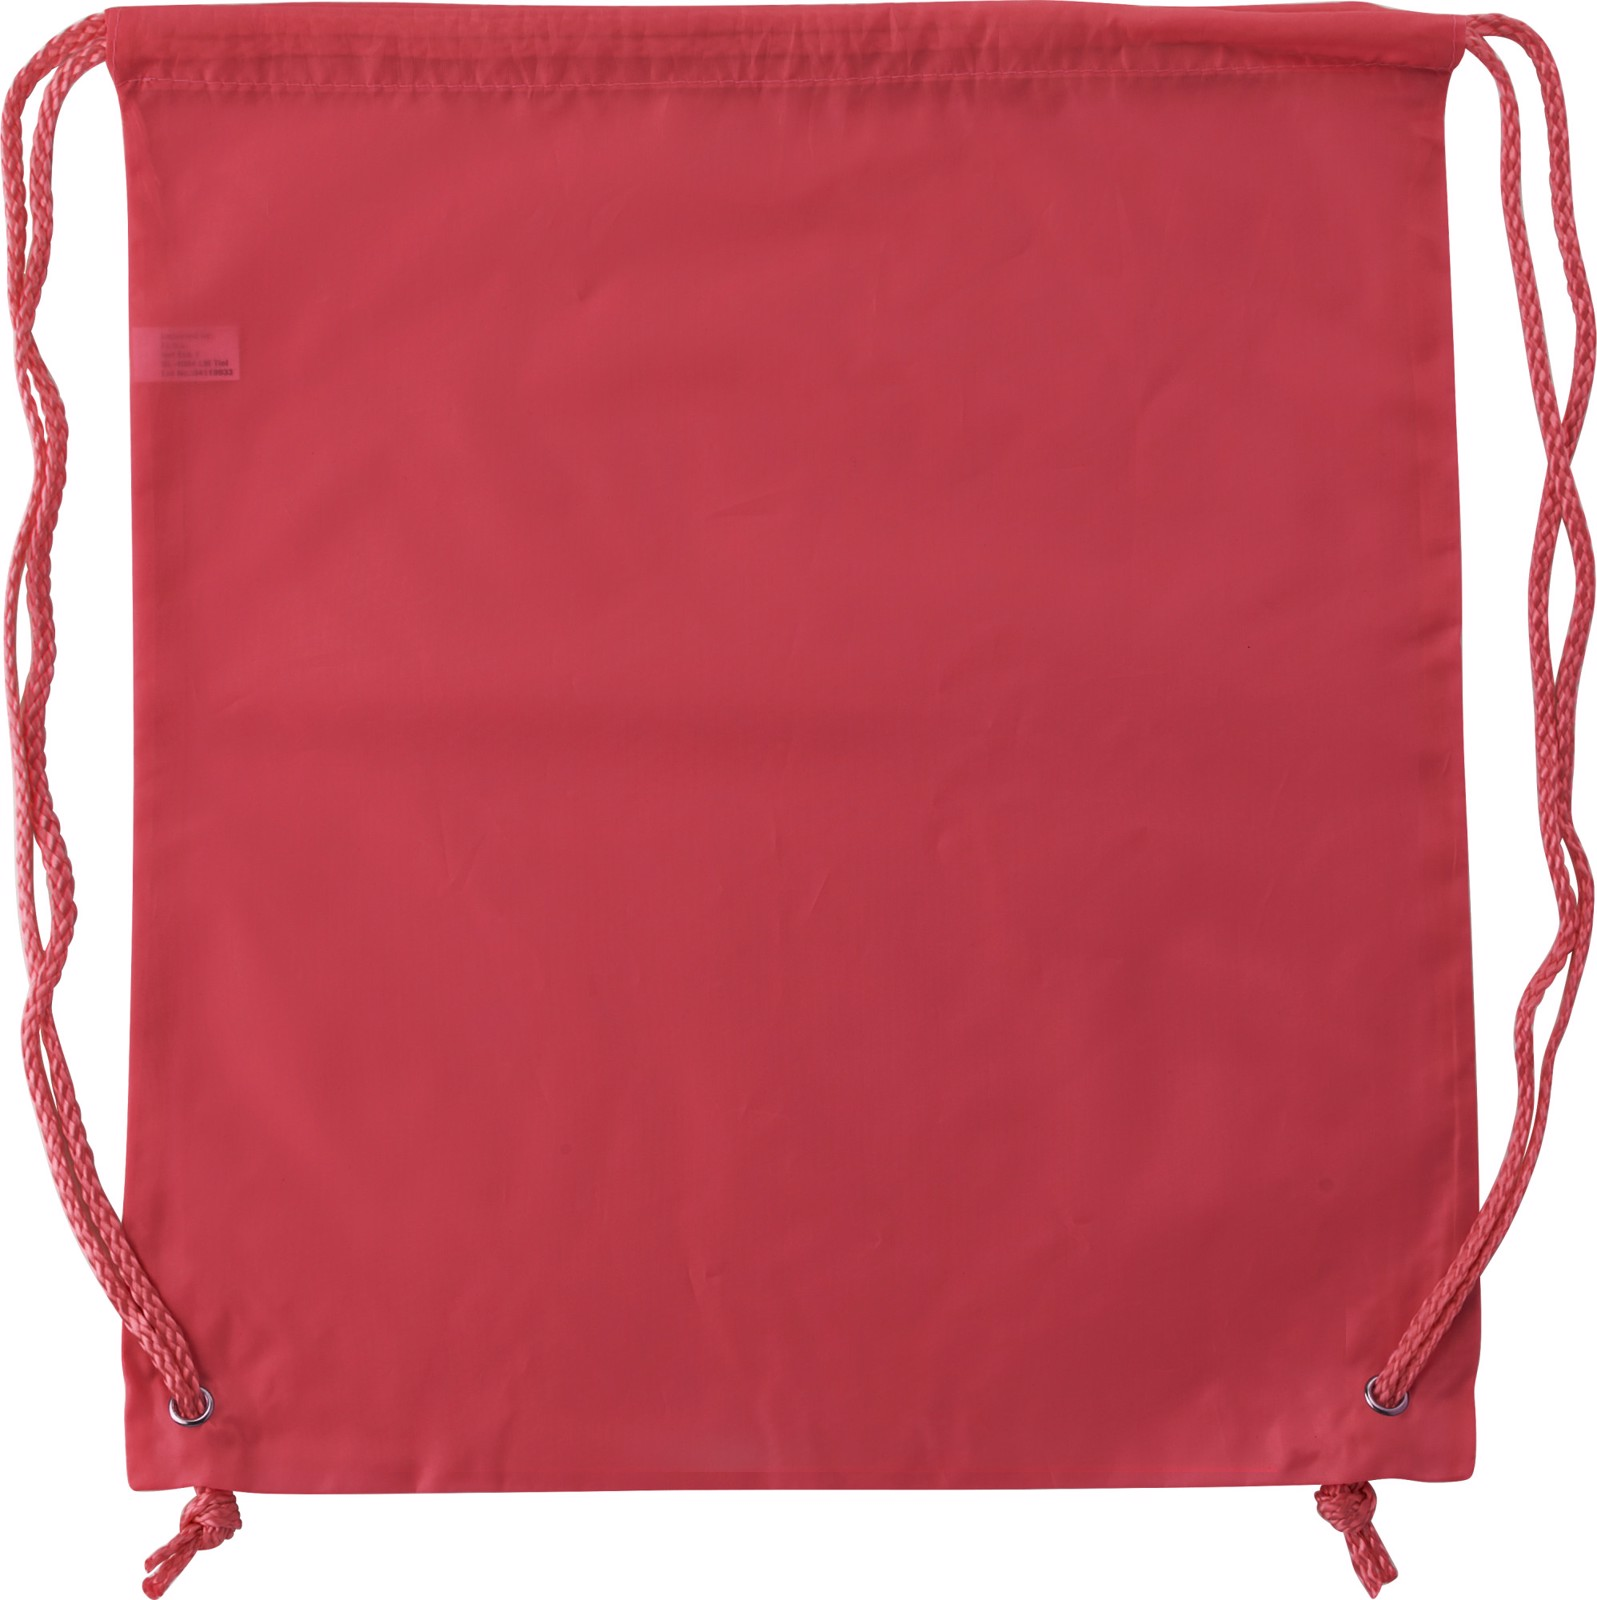 Polyester (190T) drawstring backpack - Red